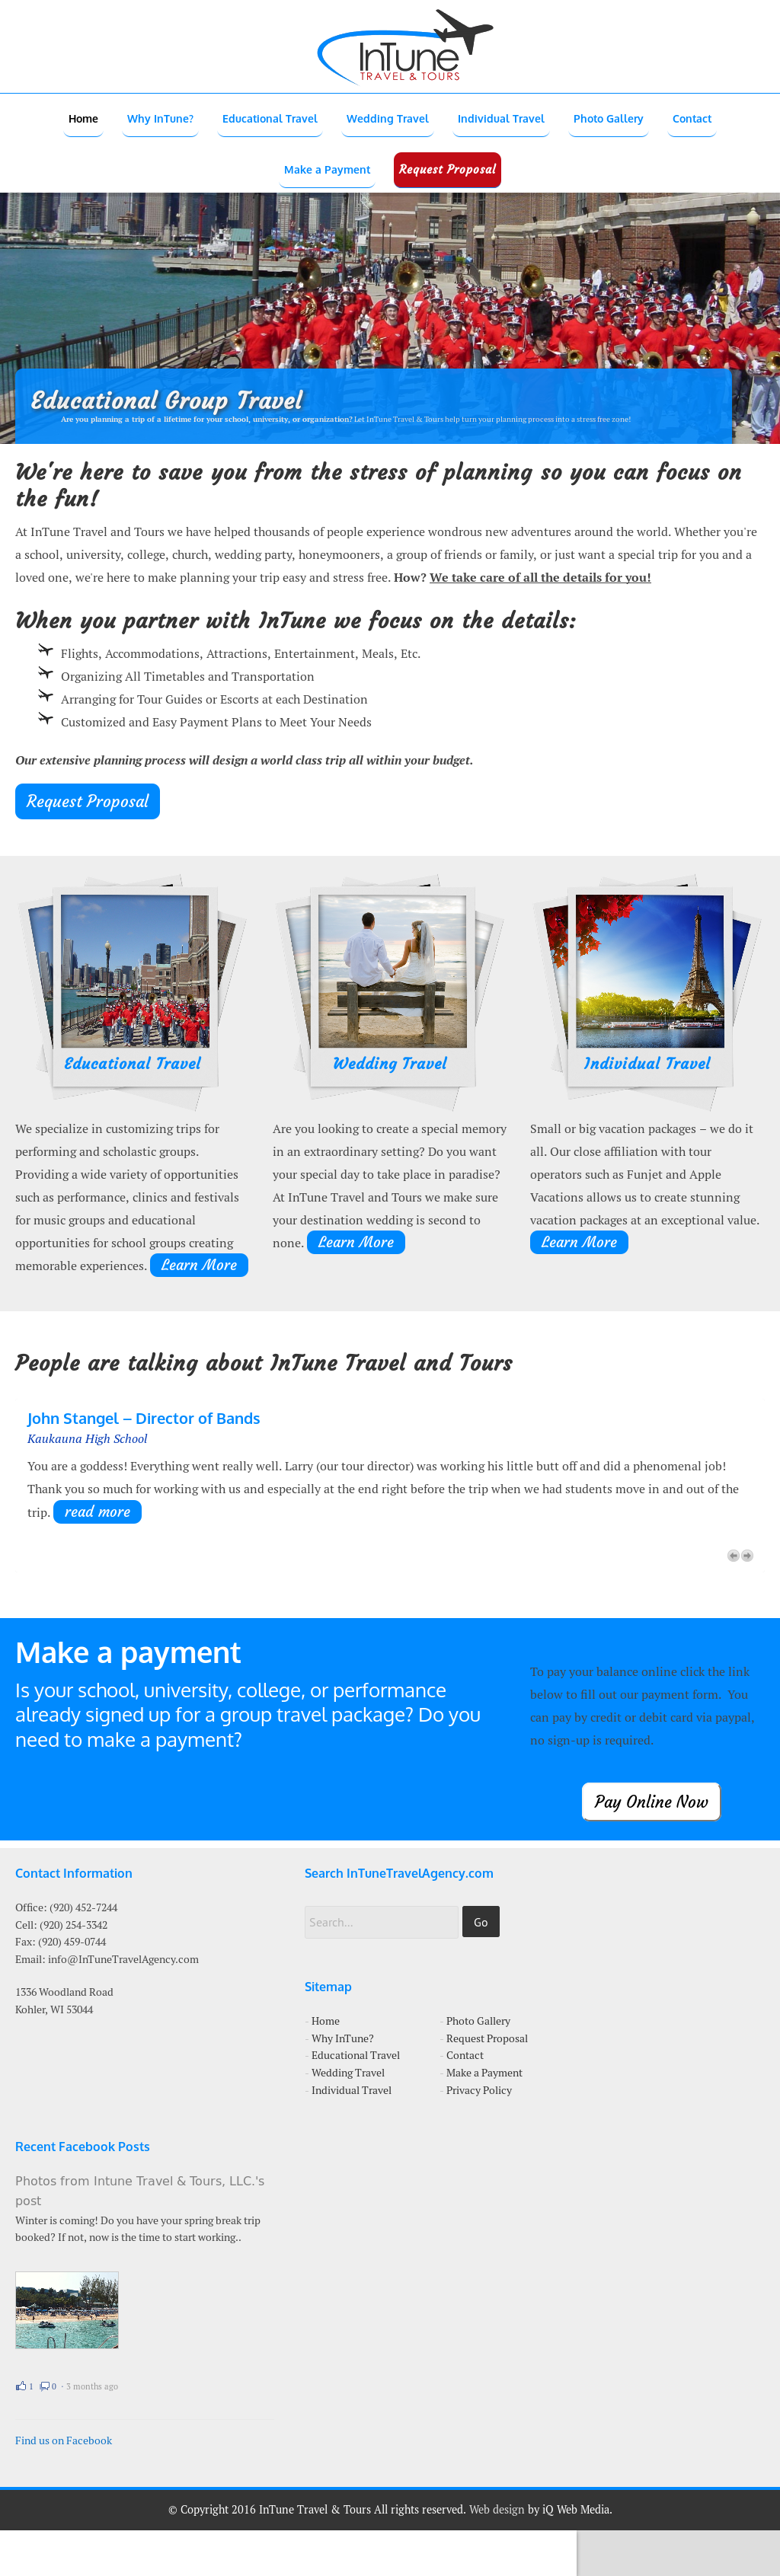 Intune Travel & Tours Competitors, Revenue and Employees